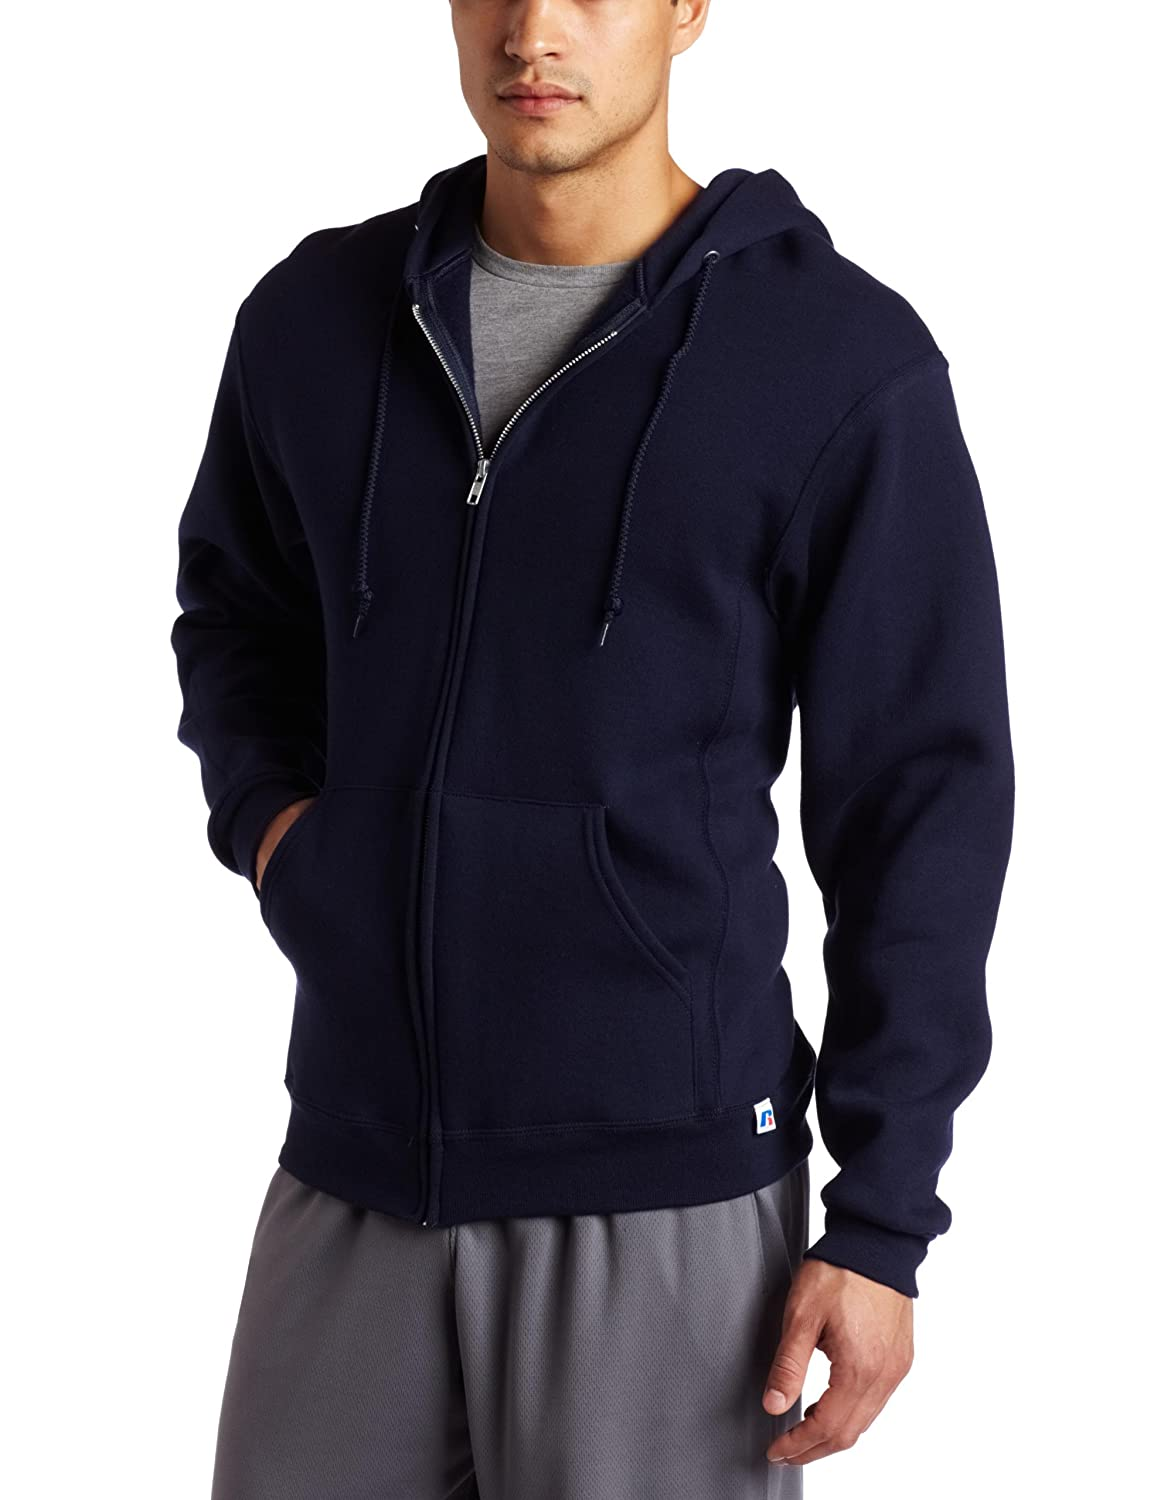 Russell Pullover, Athletic Herren Pullover, Russell Durchgehend 961e38